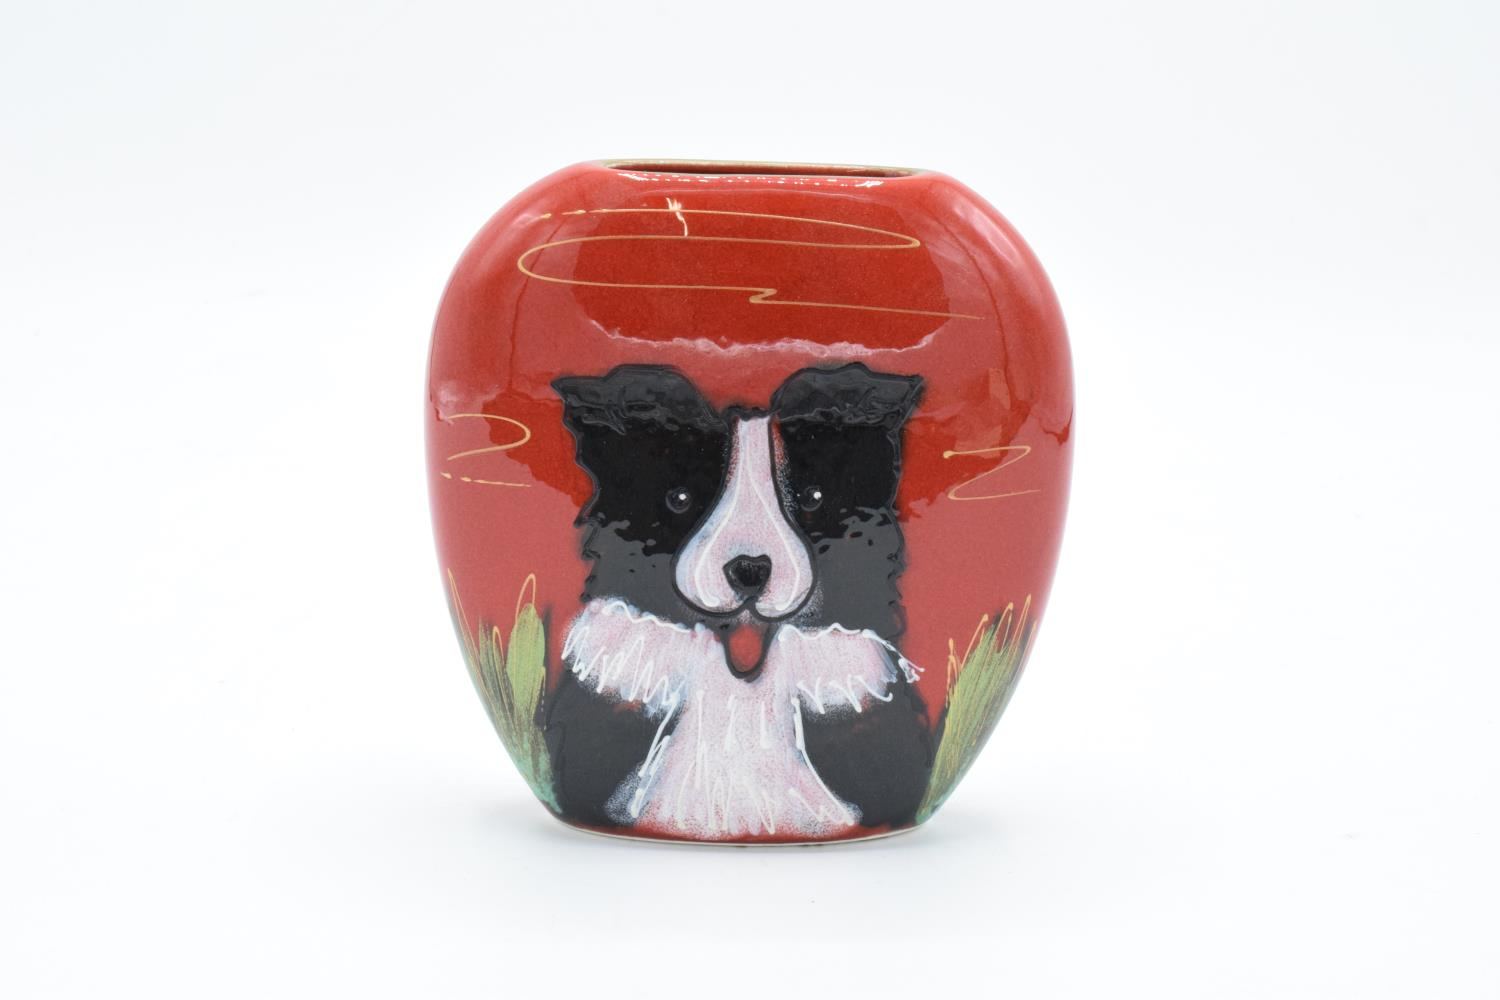 Anita Harris Art Pottery limited edition vase of a Collie: produced in an exclusive edition of 25